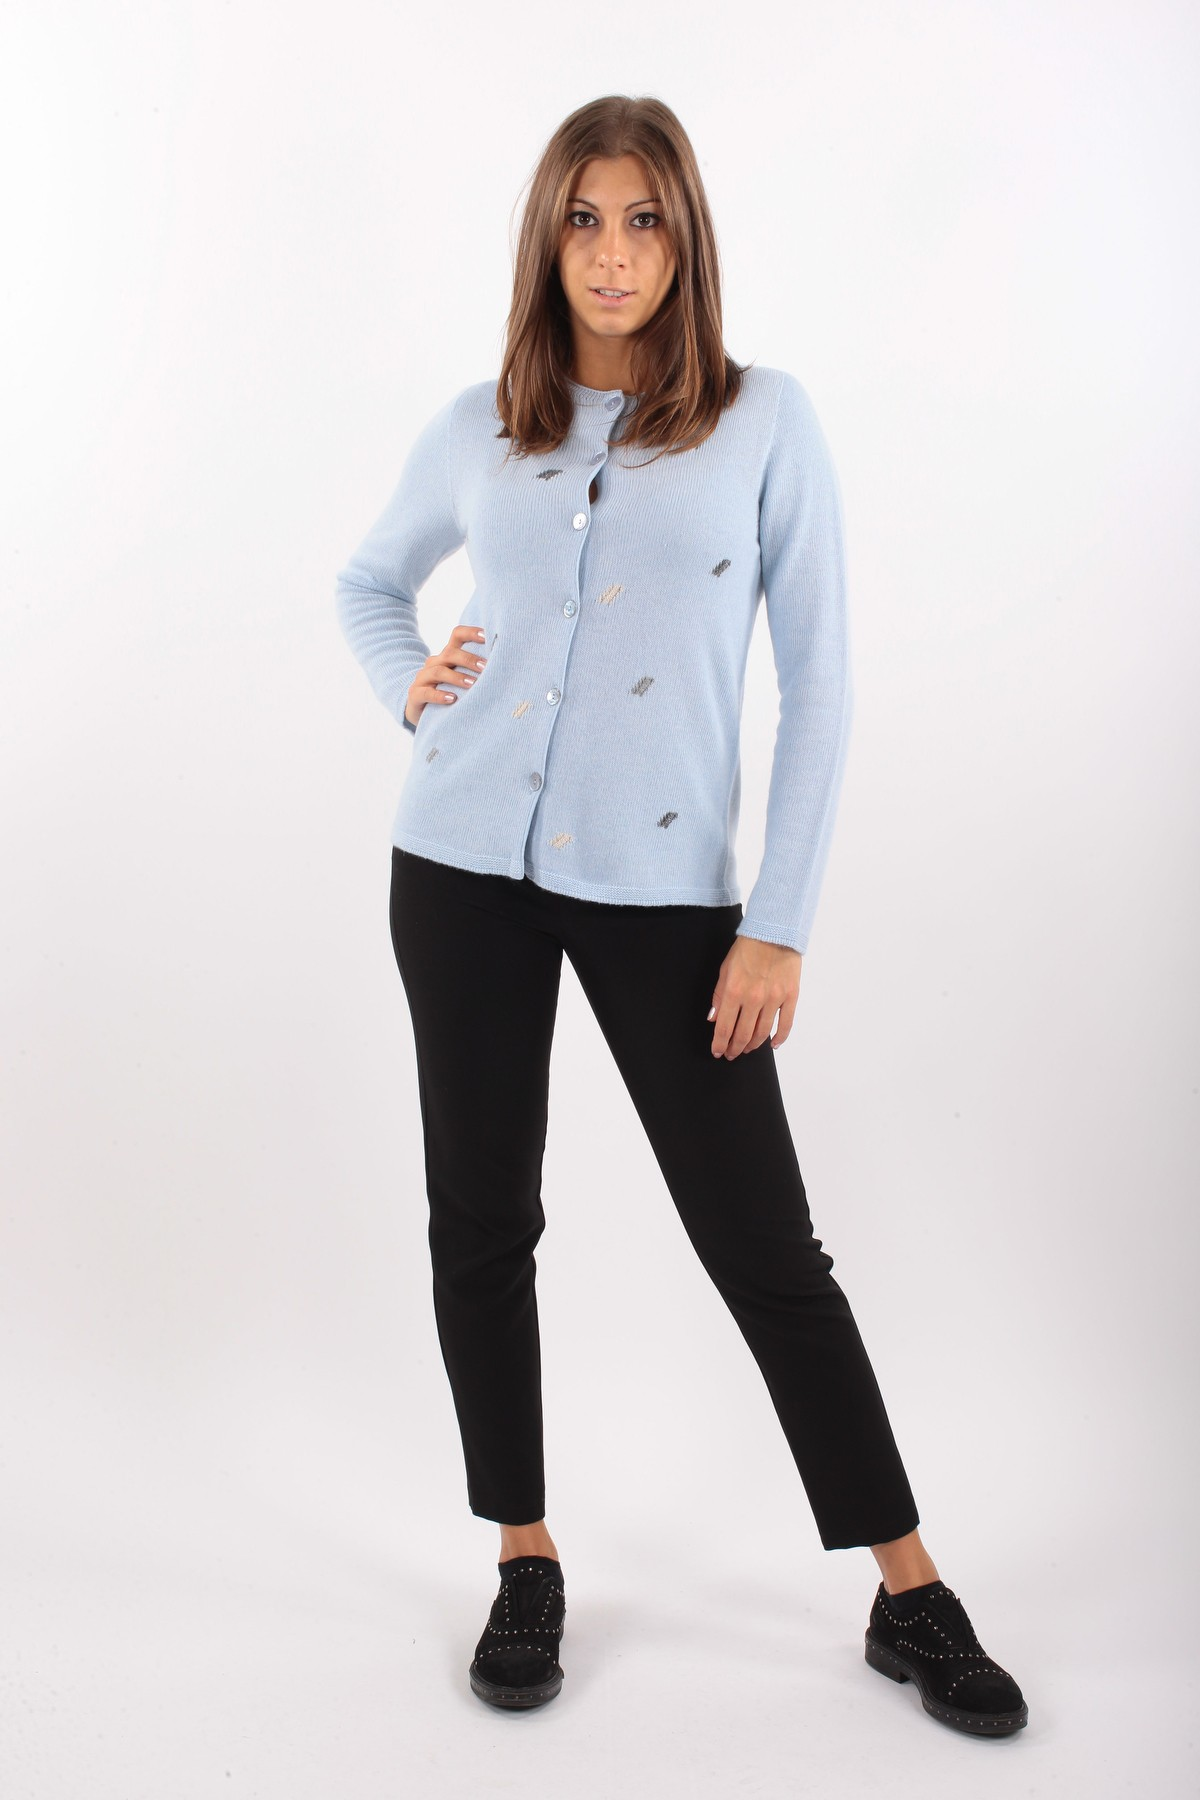 KOREAN CASHMERE BLEND WITH CONTRASTING INSERTS for women -  - Paquito Pronto Moda Shop Online